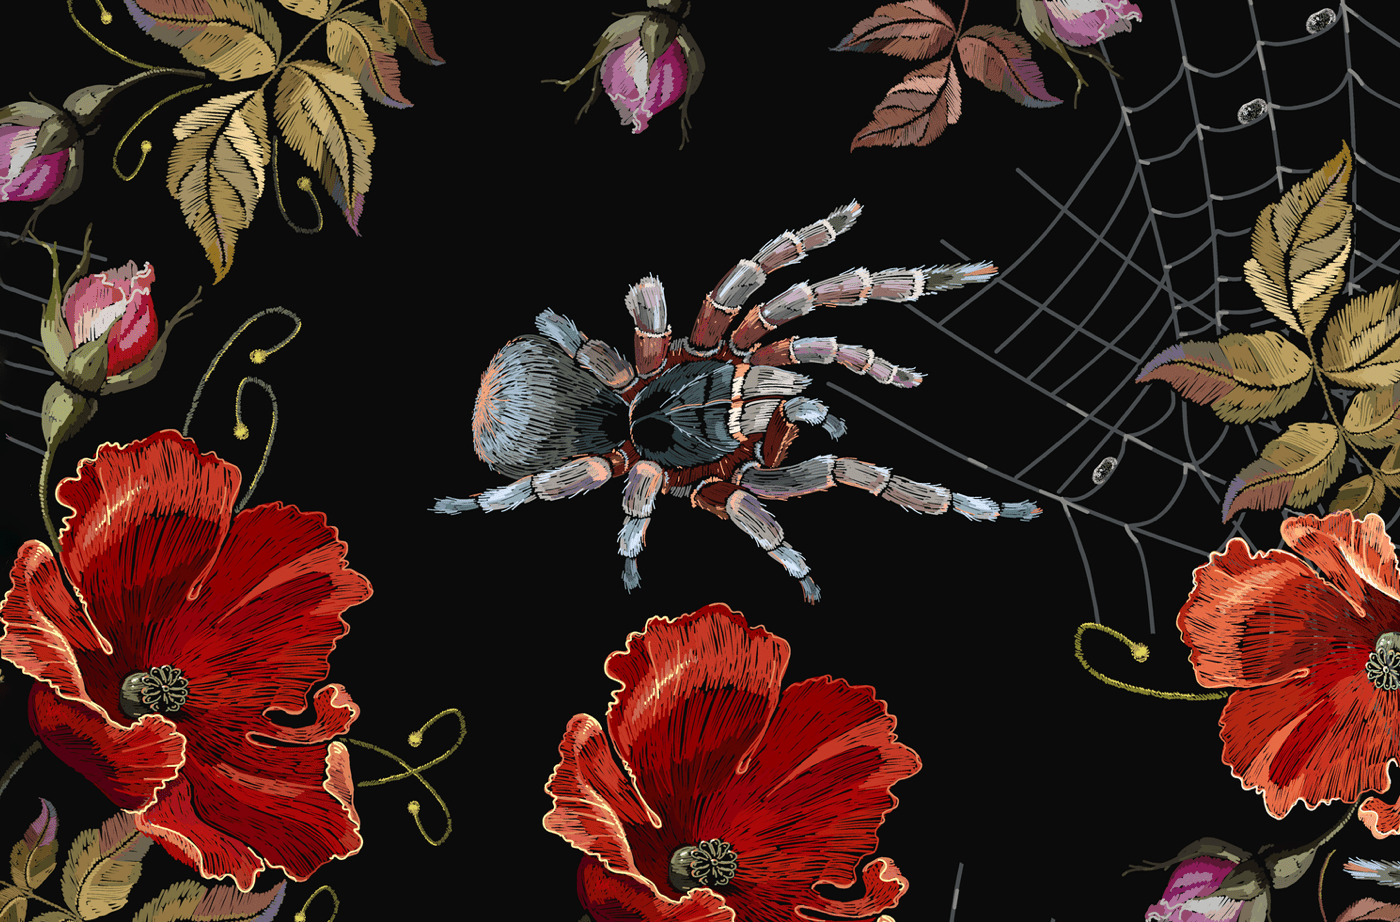 an illustration of a spider surrounded by different types of flowers